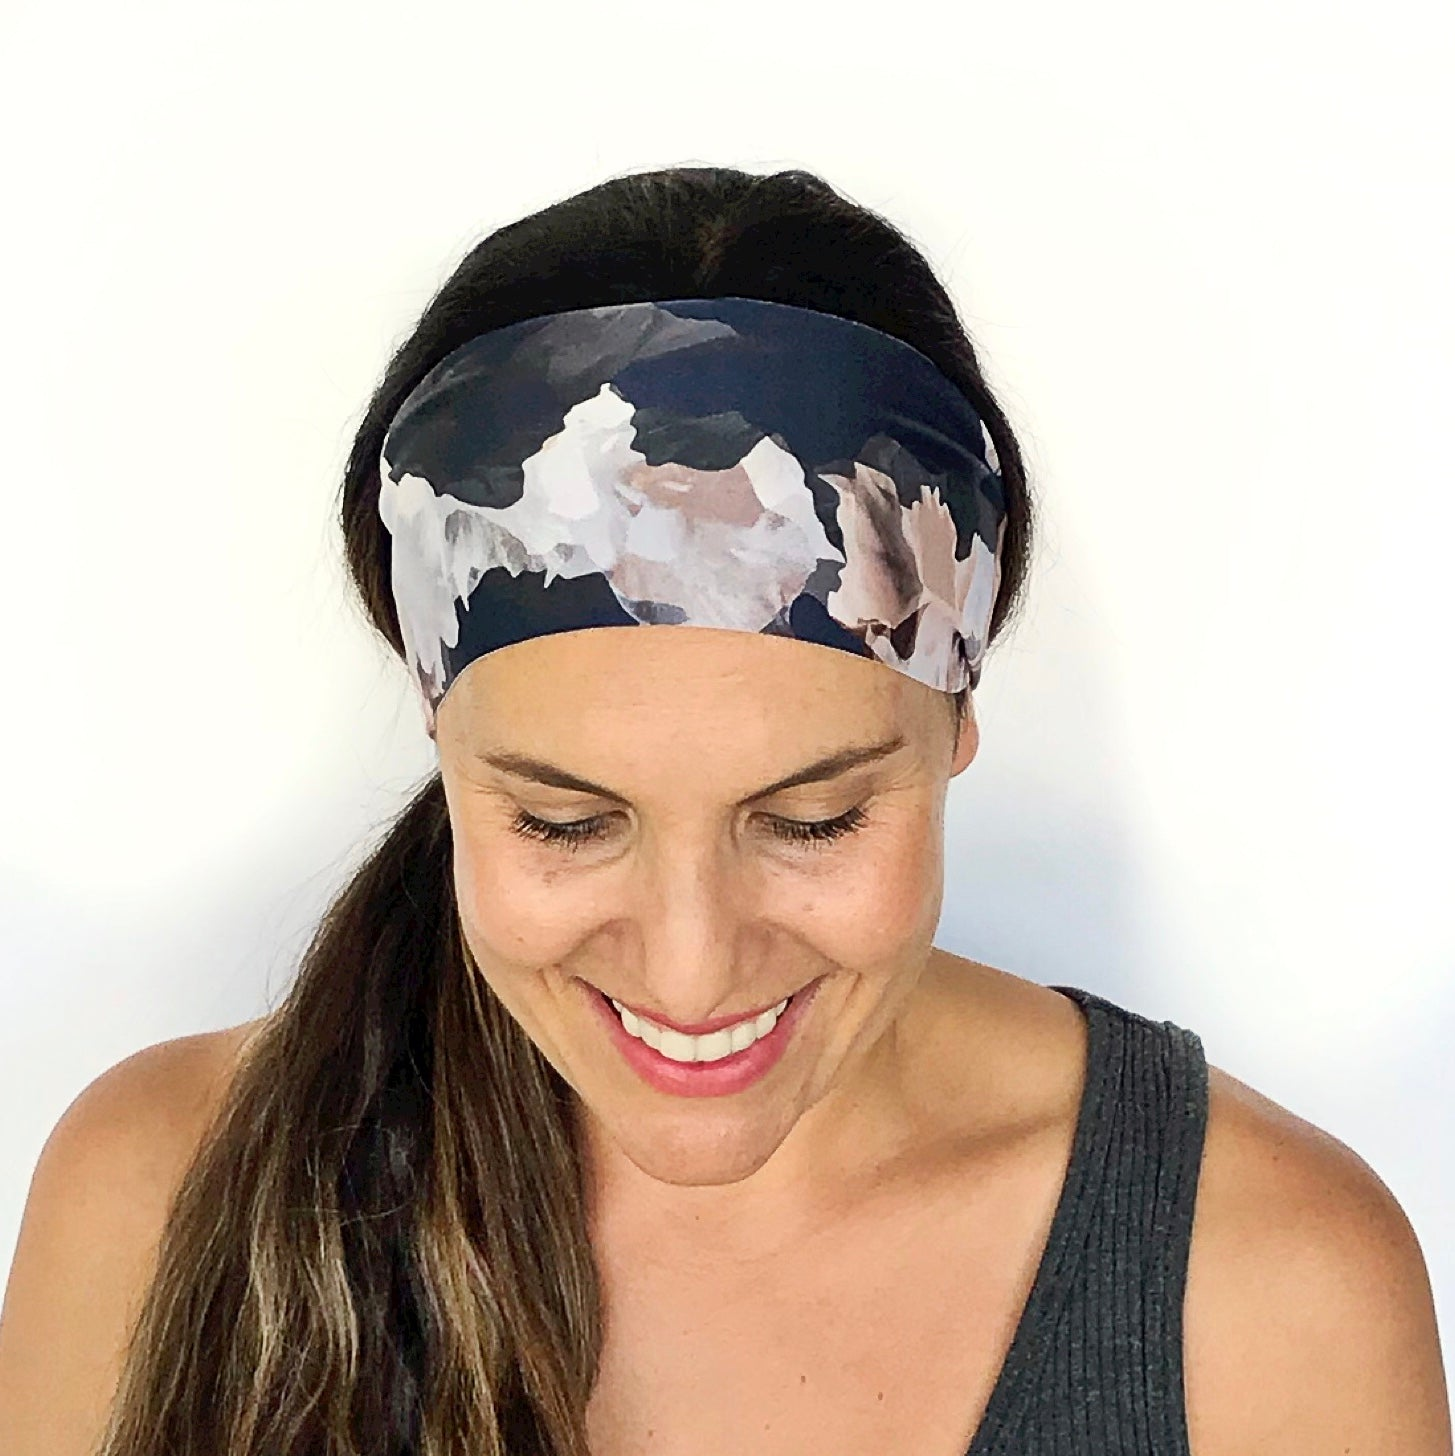 Selma Workout Headband